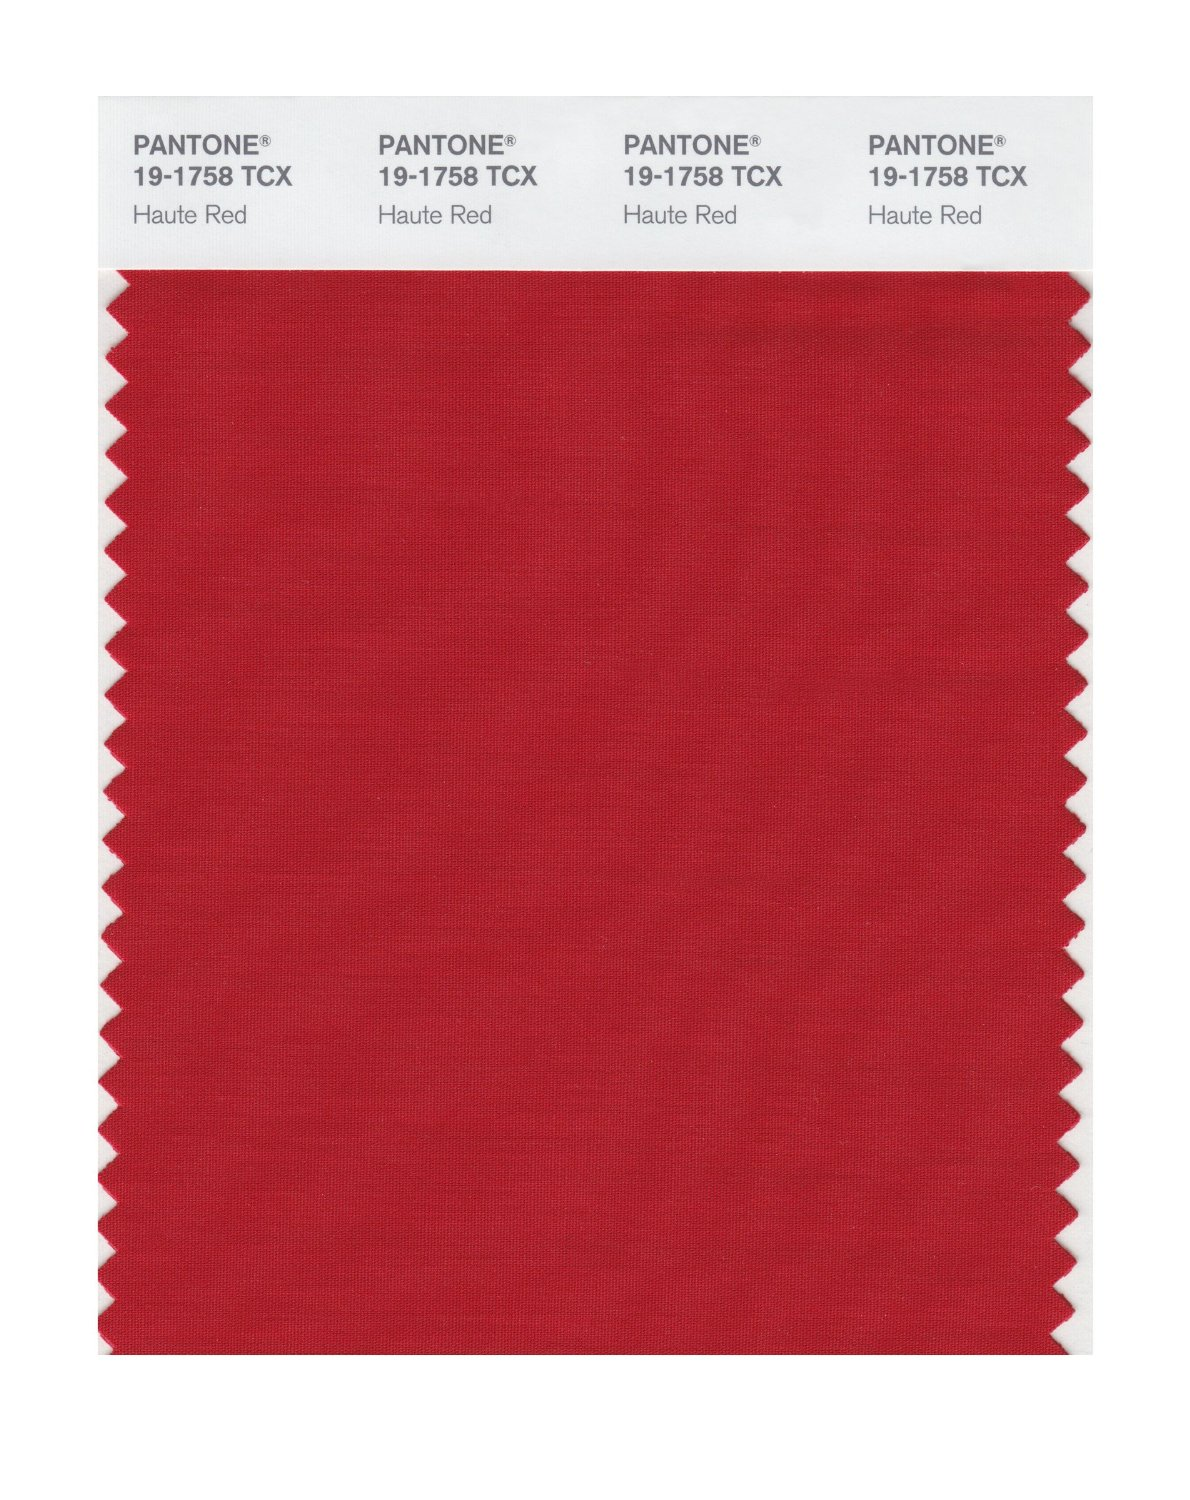 Pantone Smart Swatch 19-1758 Haute Red